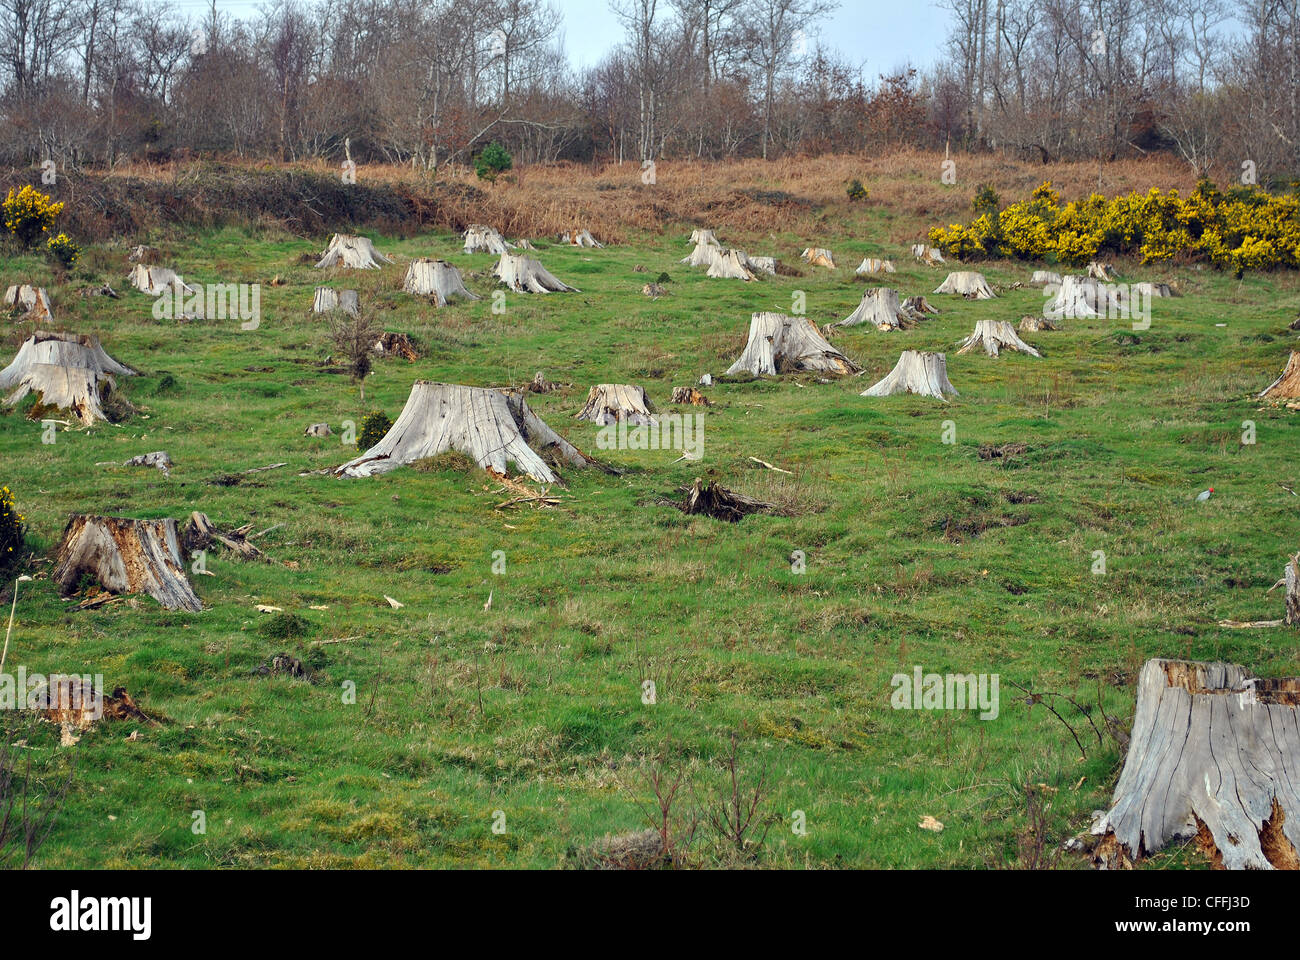 old tree stumps in a field - Stock Image